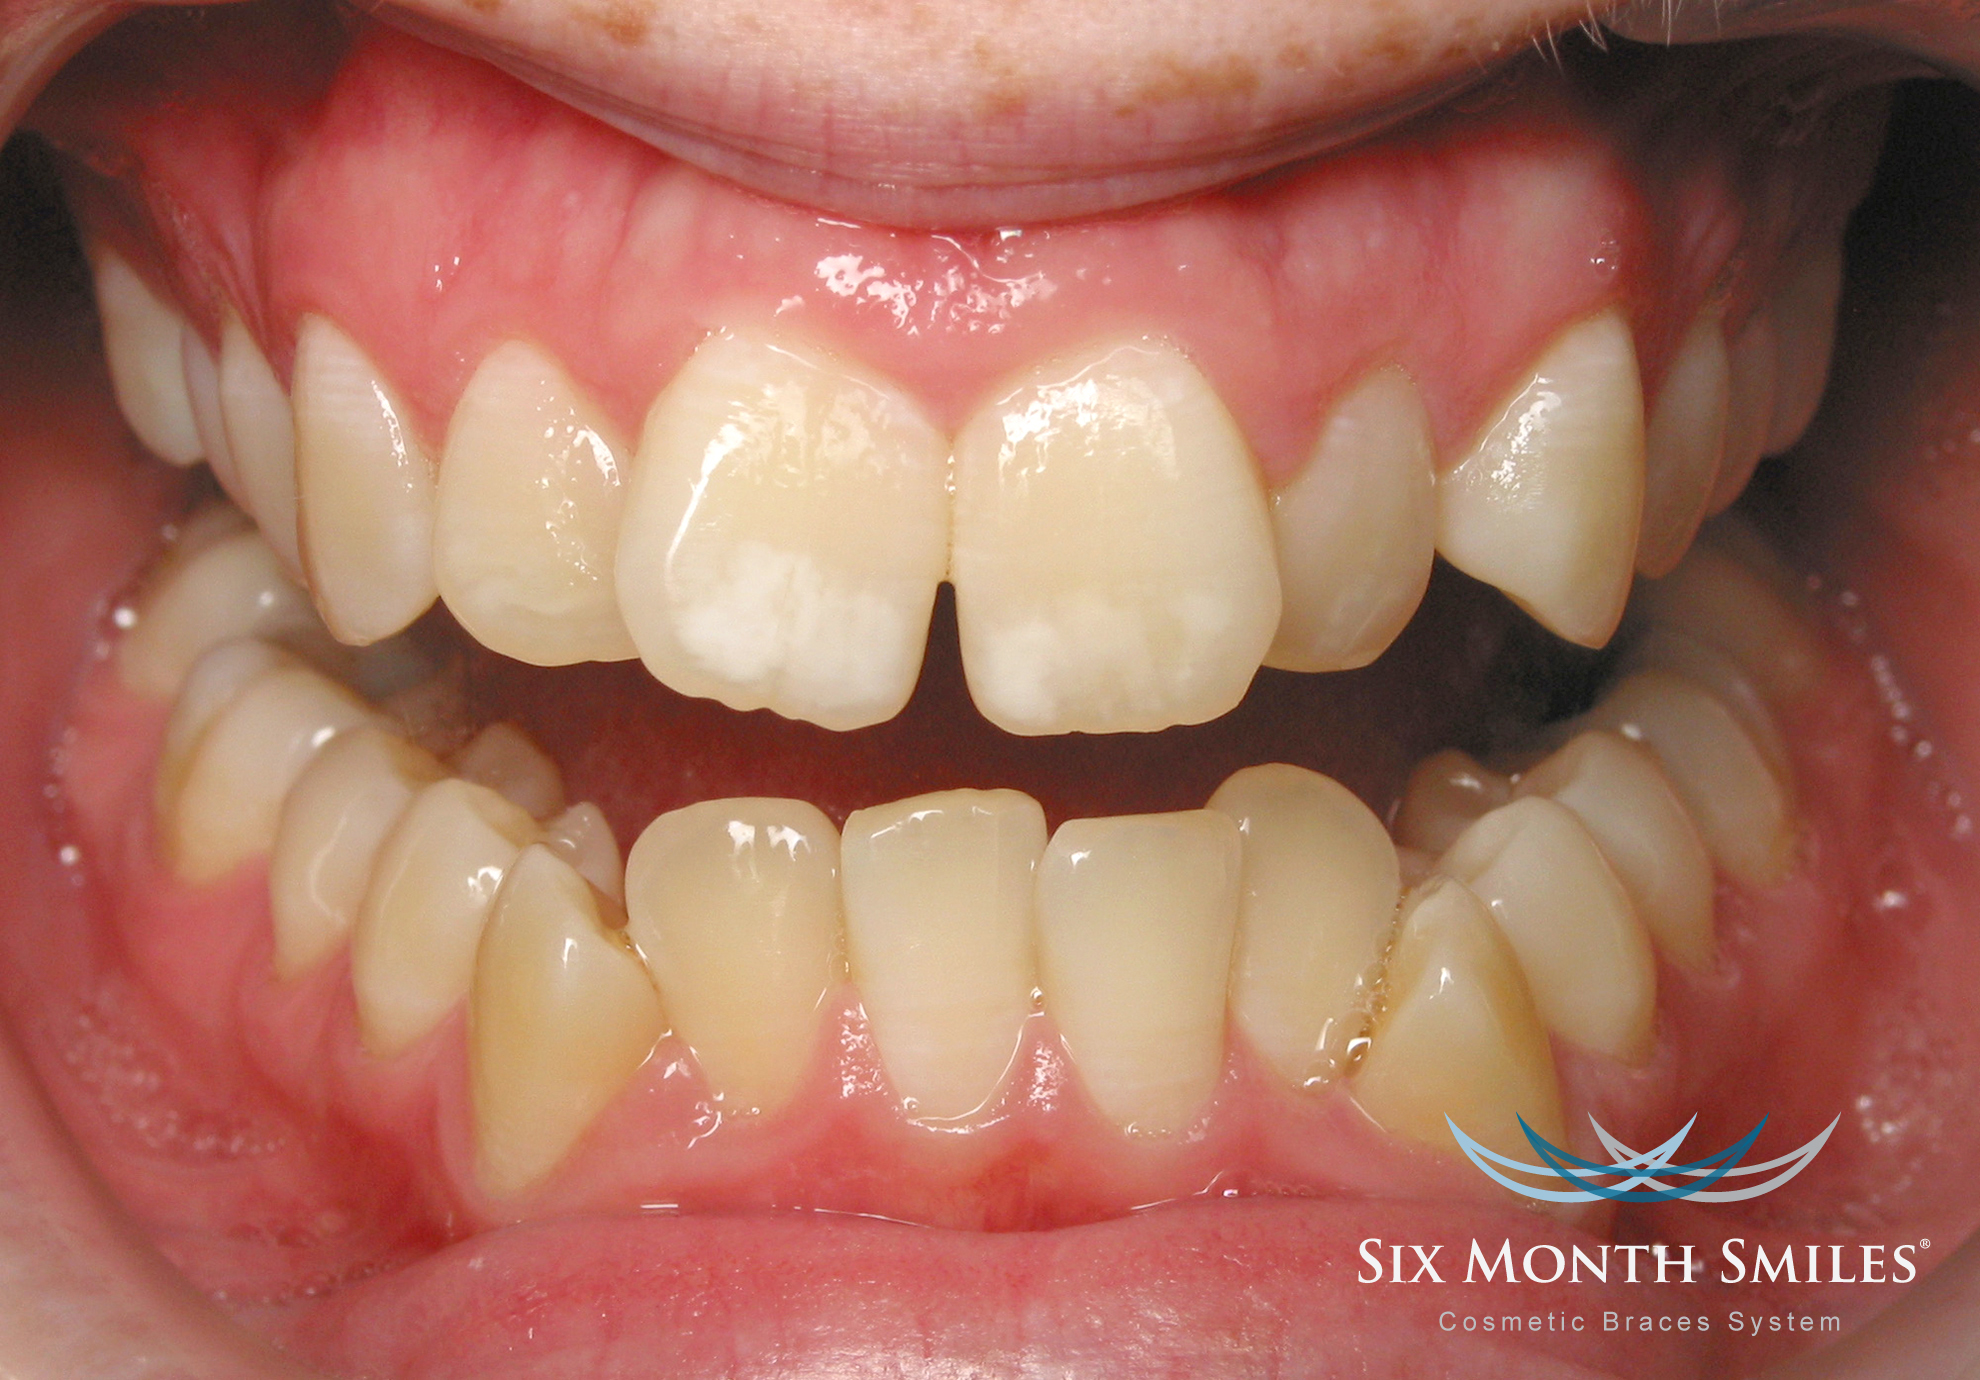 photo of patient teeth before Six Month Smiles